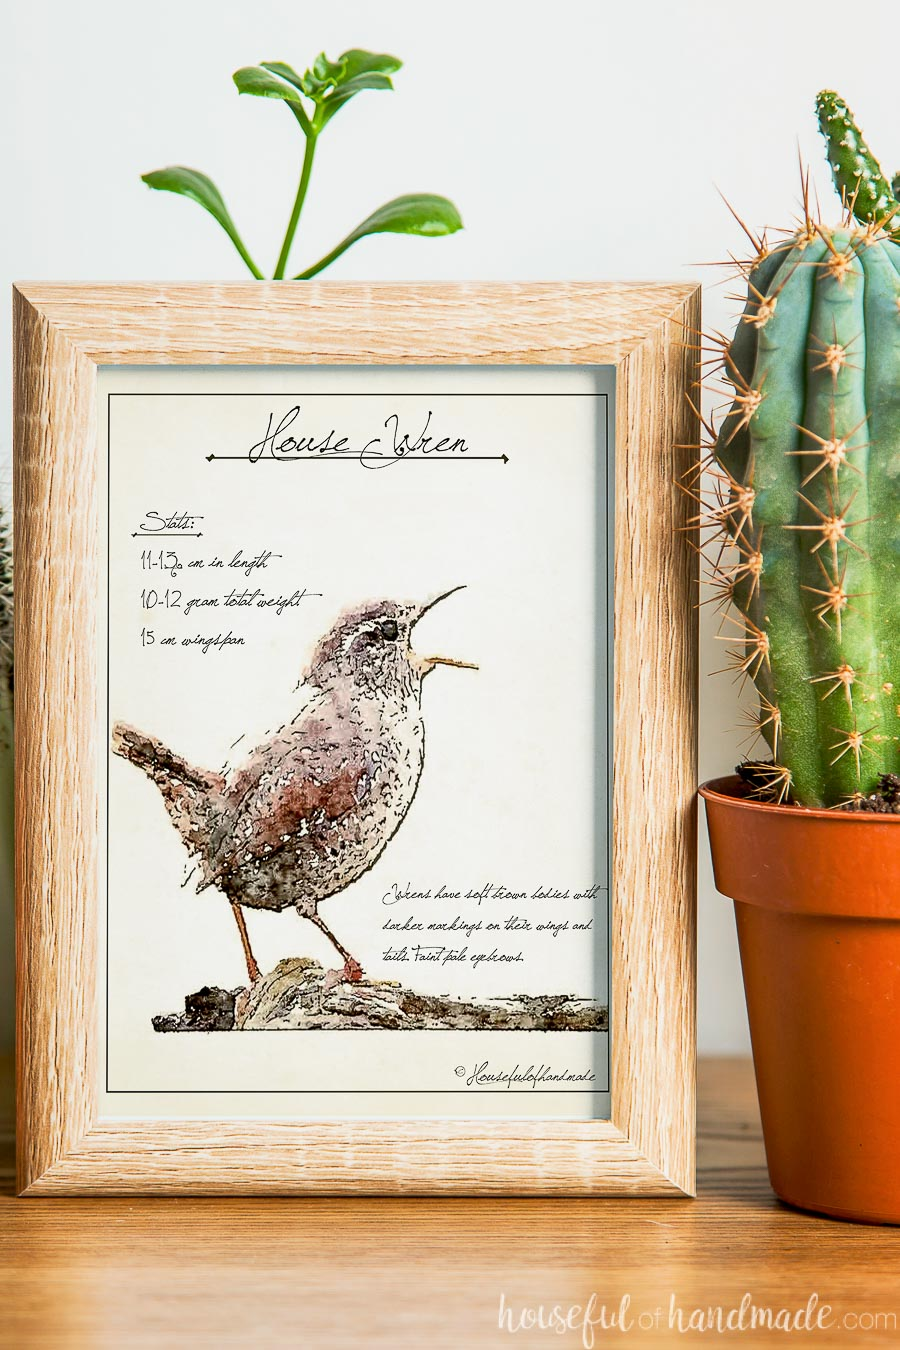 Small frame with a bird sketch art print of a wren in it.